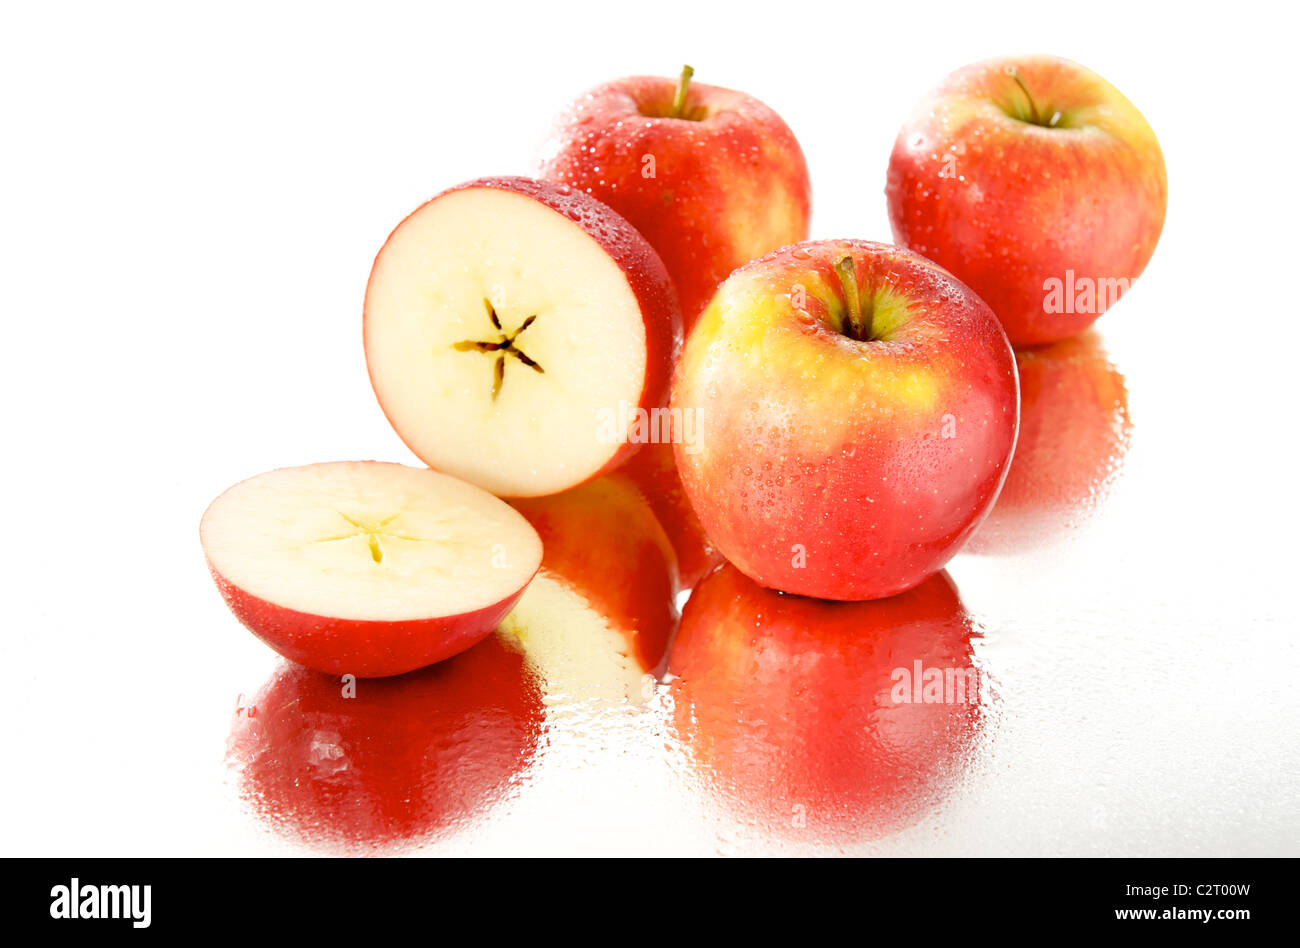 Group of wet apples on the mirror with white background. One apple is cut in half crosswise and the pentagram is - Stock Image